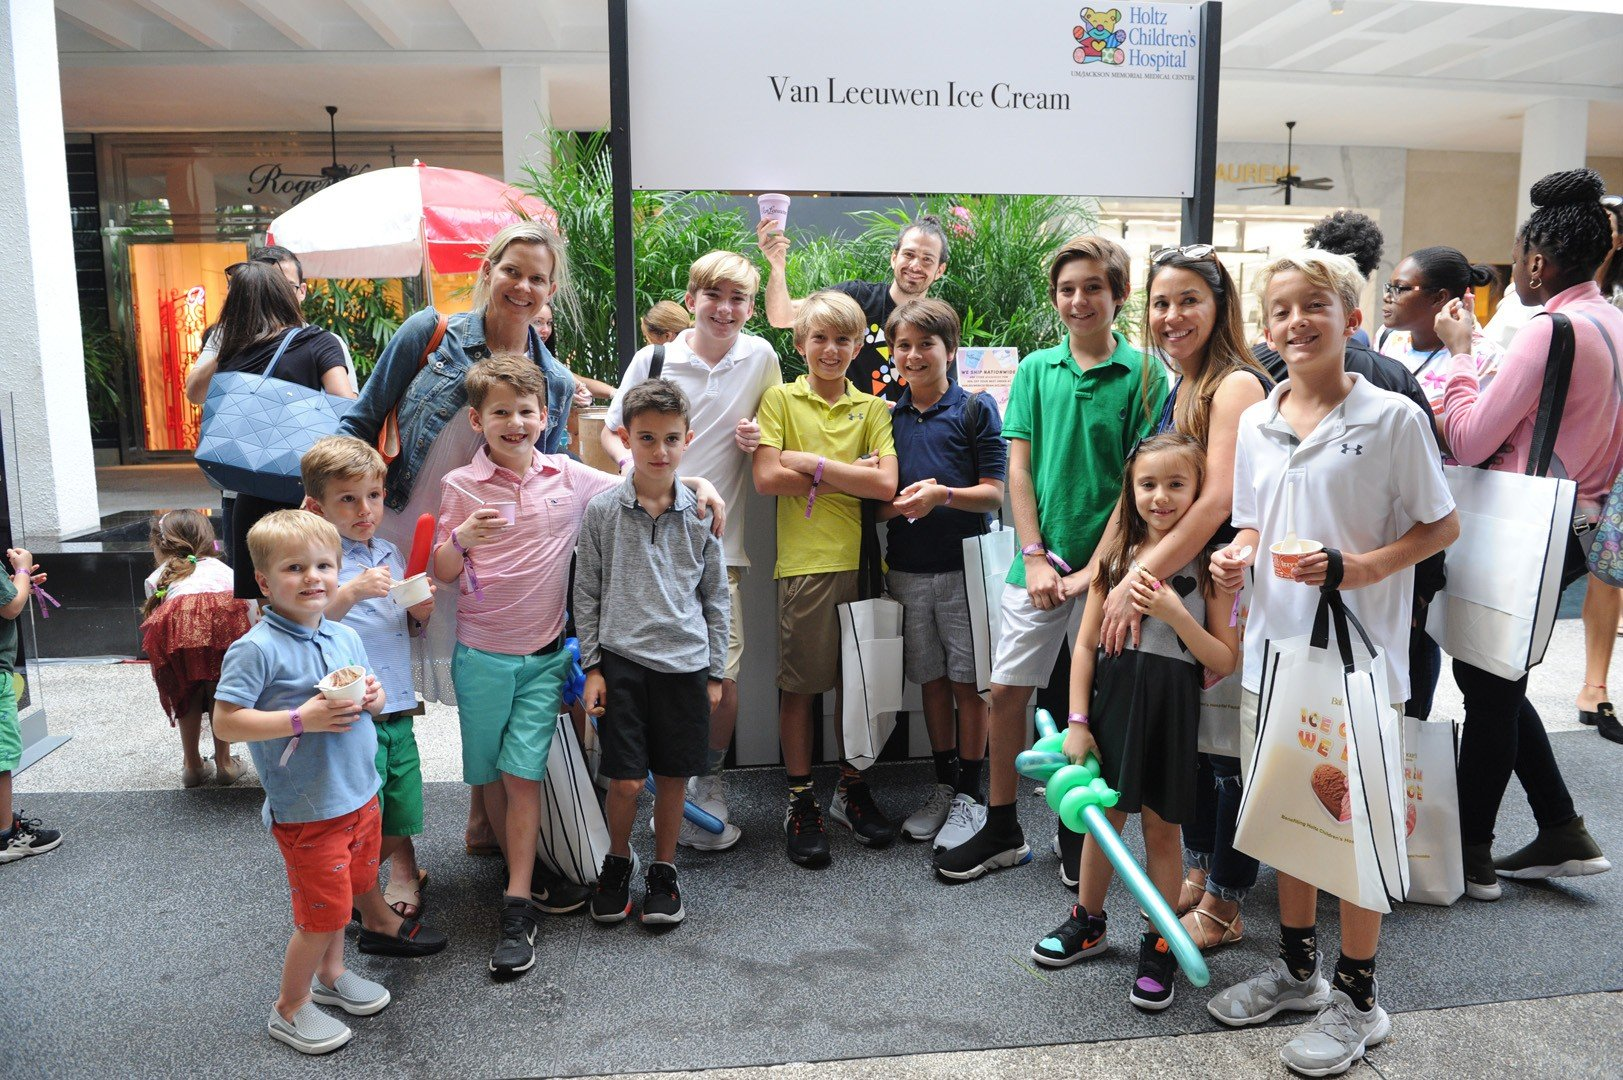 Kristin Lazenby with friends and family and owner Ben Van Leeuwen from Van Leeuwen Ice Cream in Brooklyn, NY